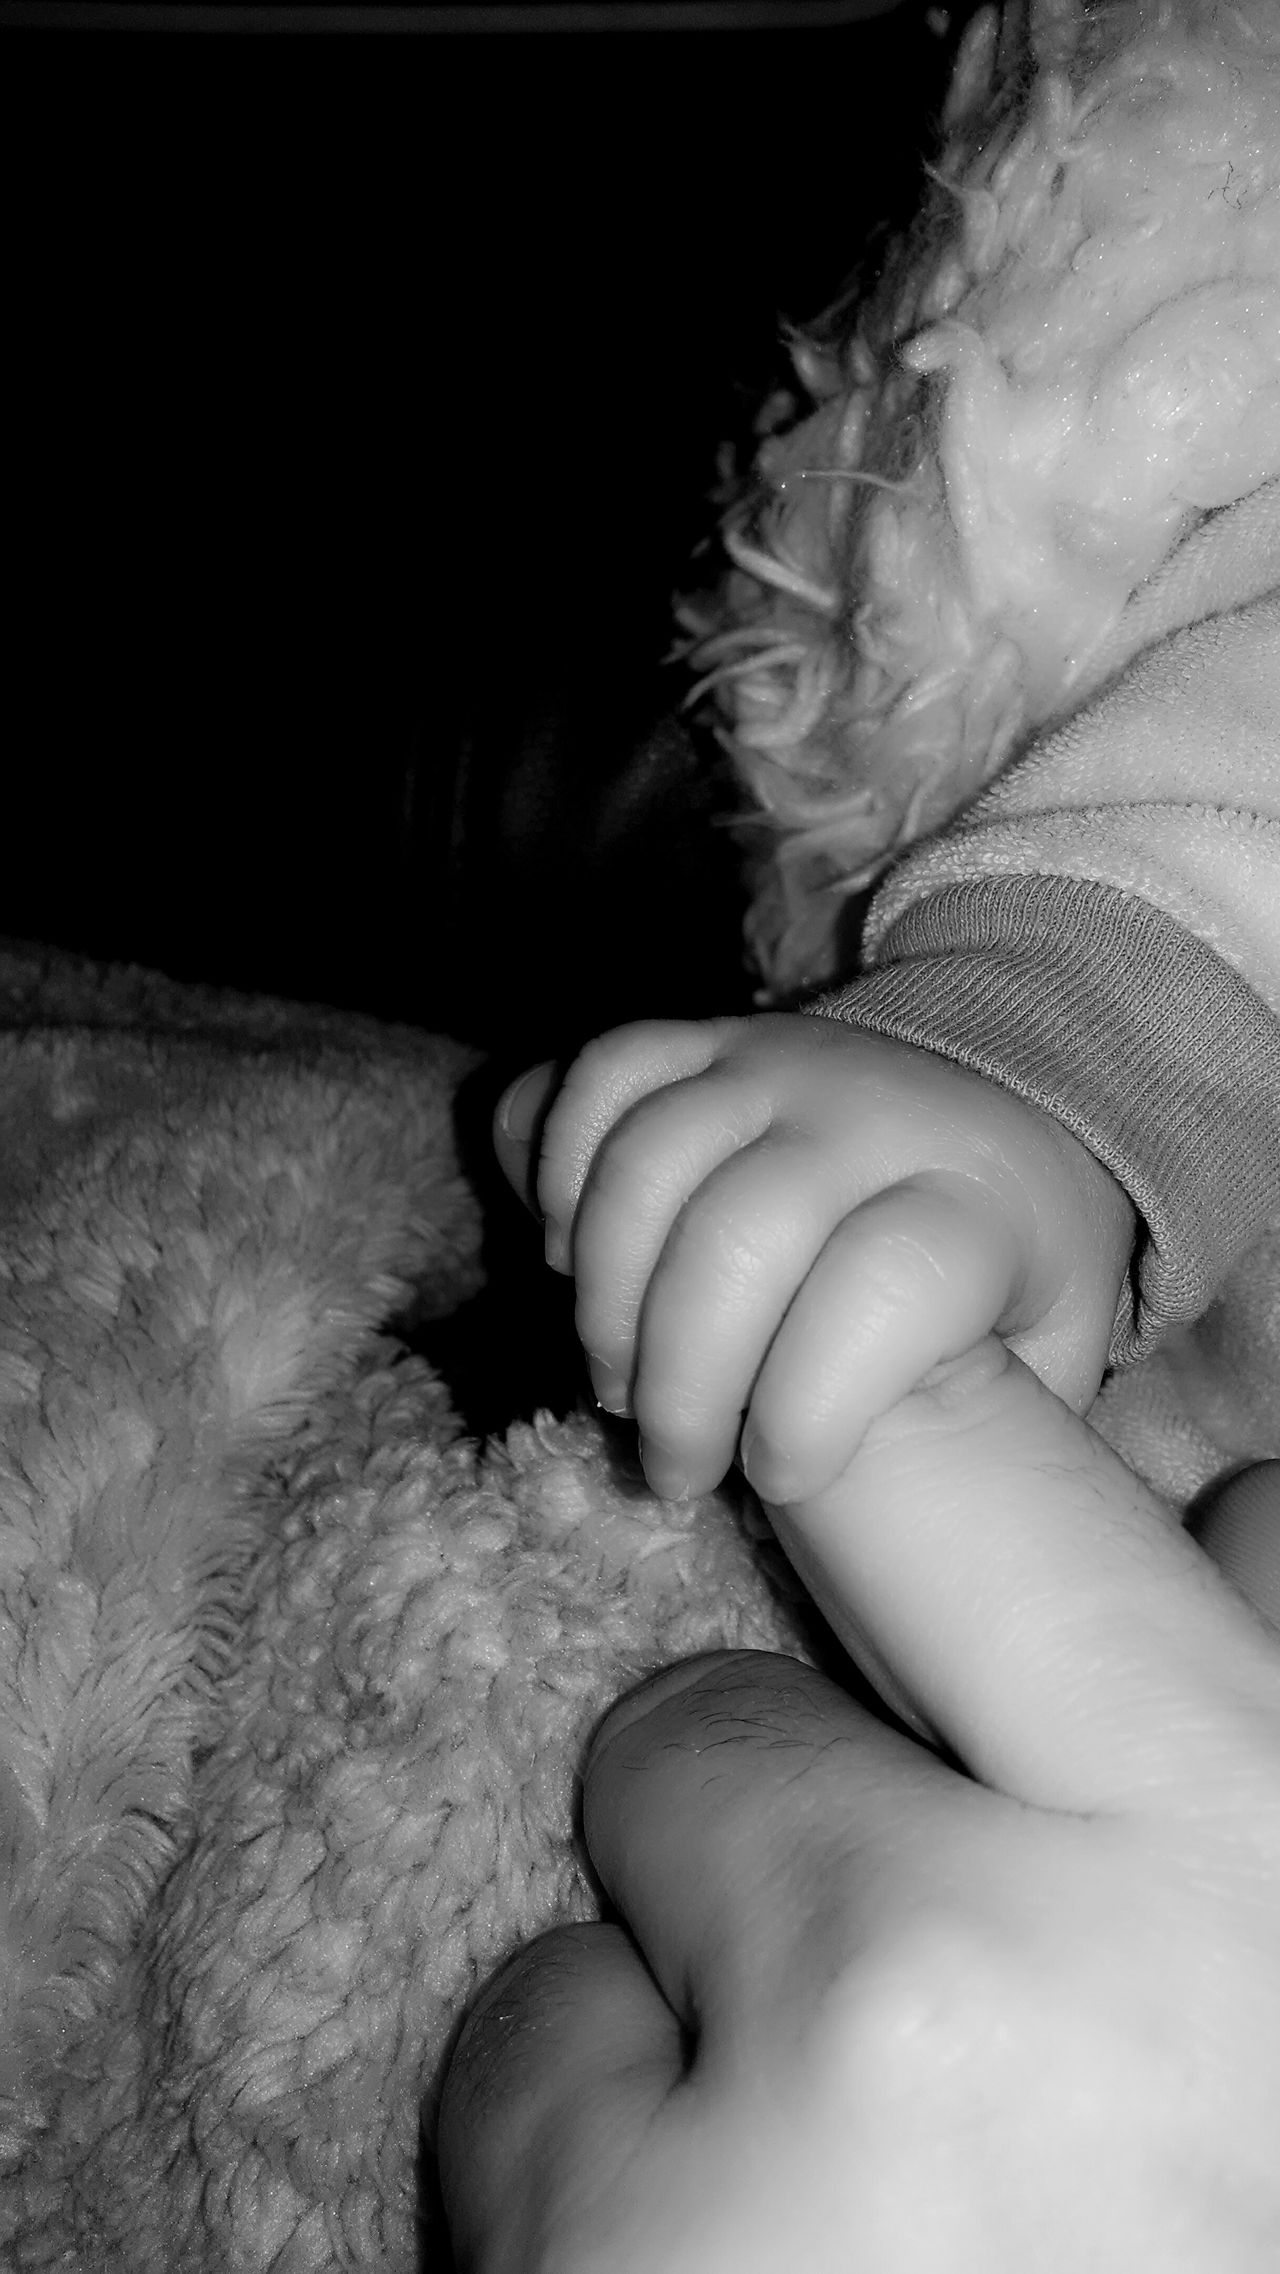 Sometimes it's the small things in life that you must hold on to forever. What I Value My World ♥ Daddysboy Blackandwhitephotography Loveyouforever PhotographybyTripp Smartphonephotography